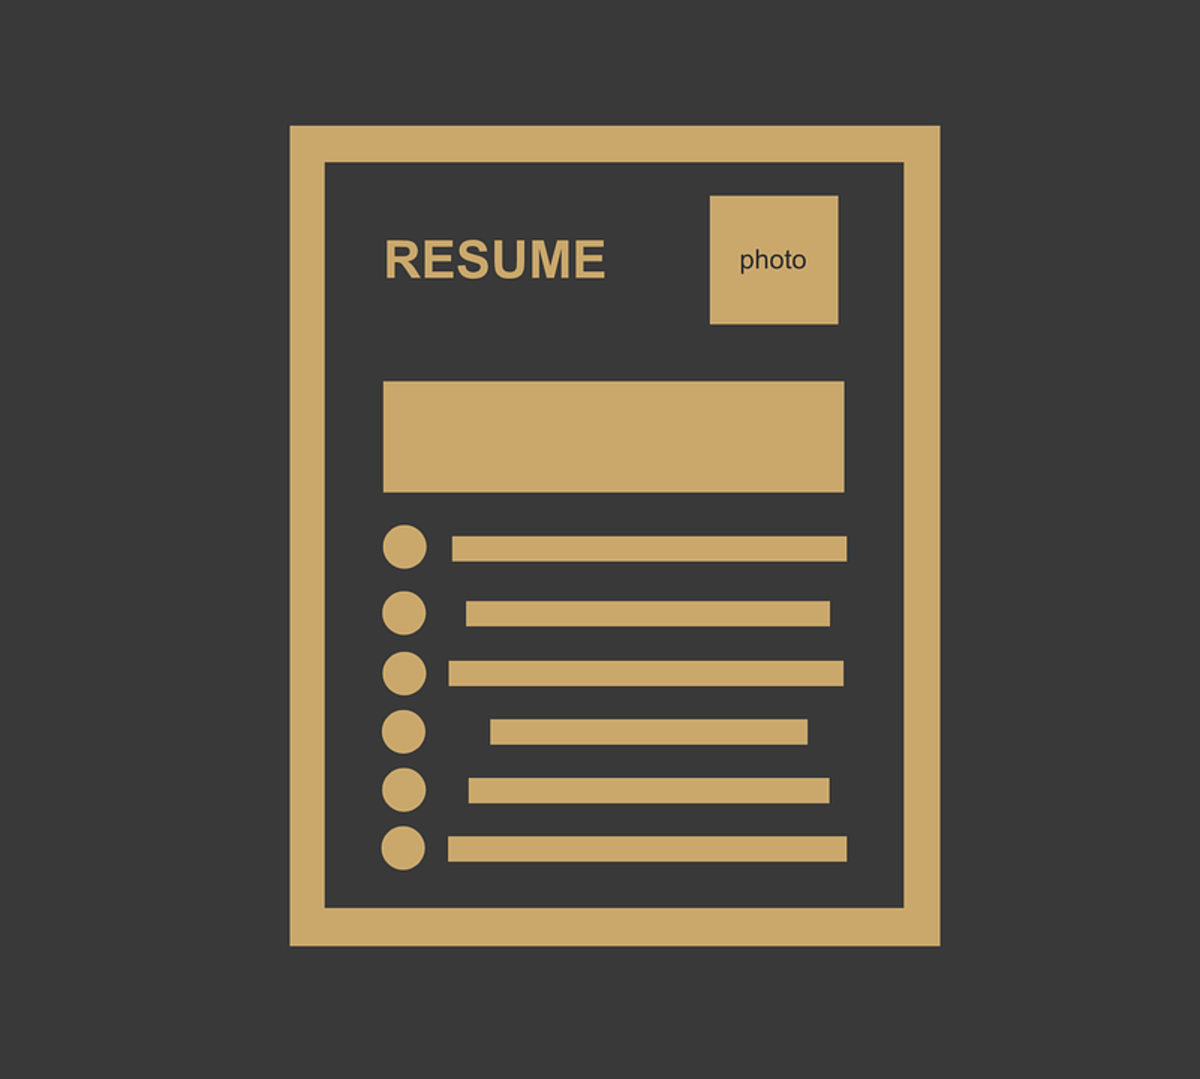 How to Explain a Gap in Employment History on a Resume, Application ...